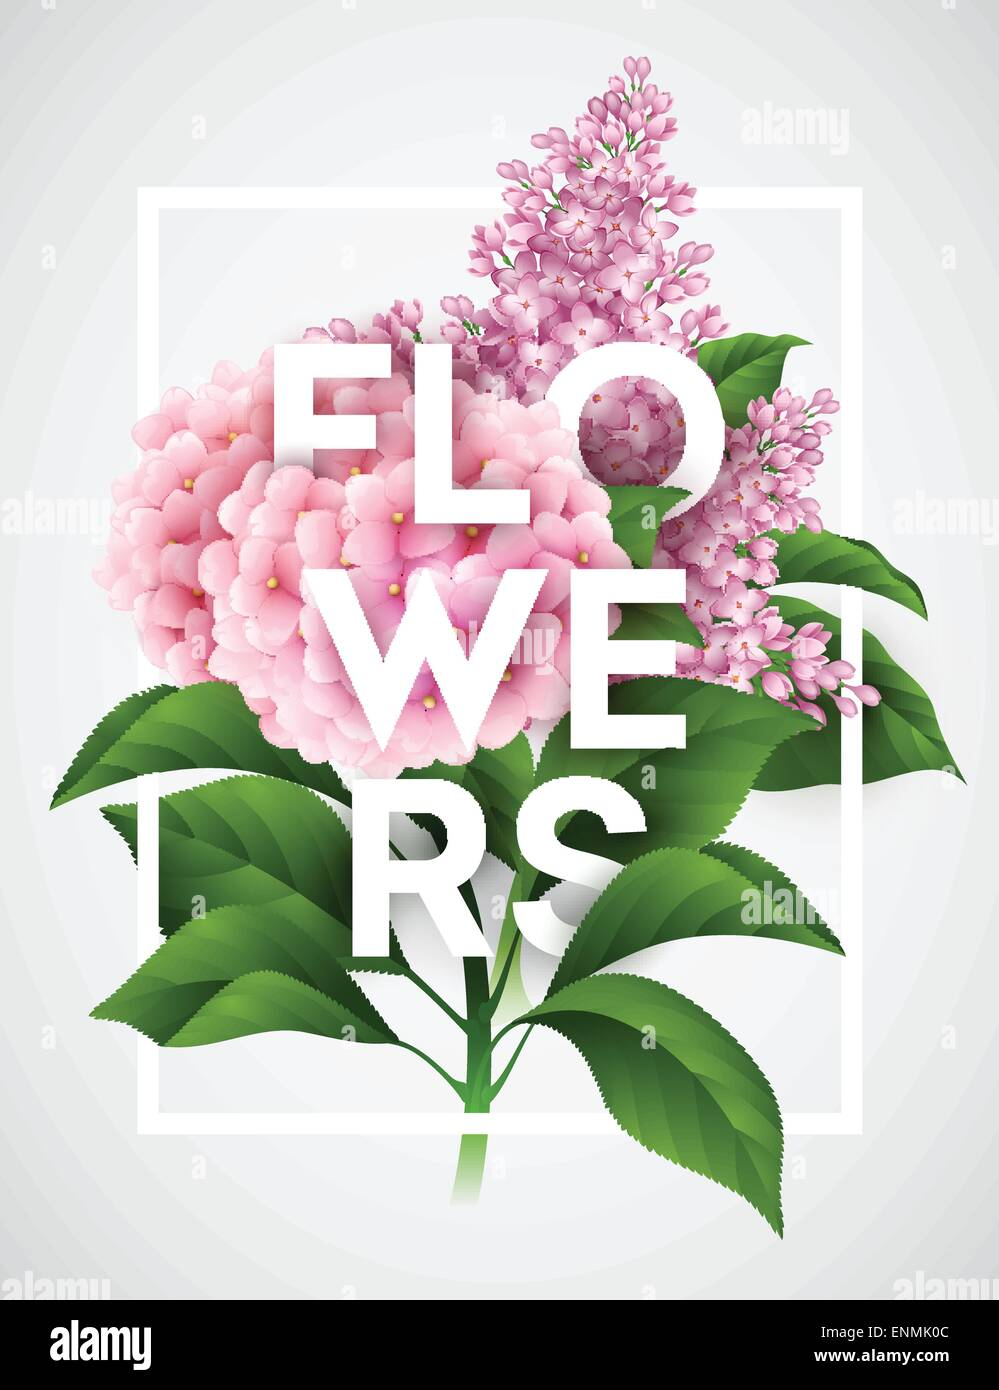 Stylish Vector Poster With Beautiful Flowers Eps 10 Stock Vector Art